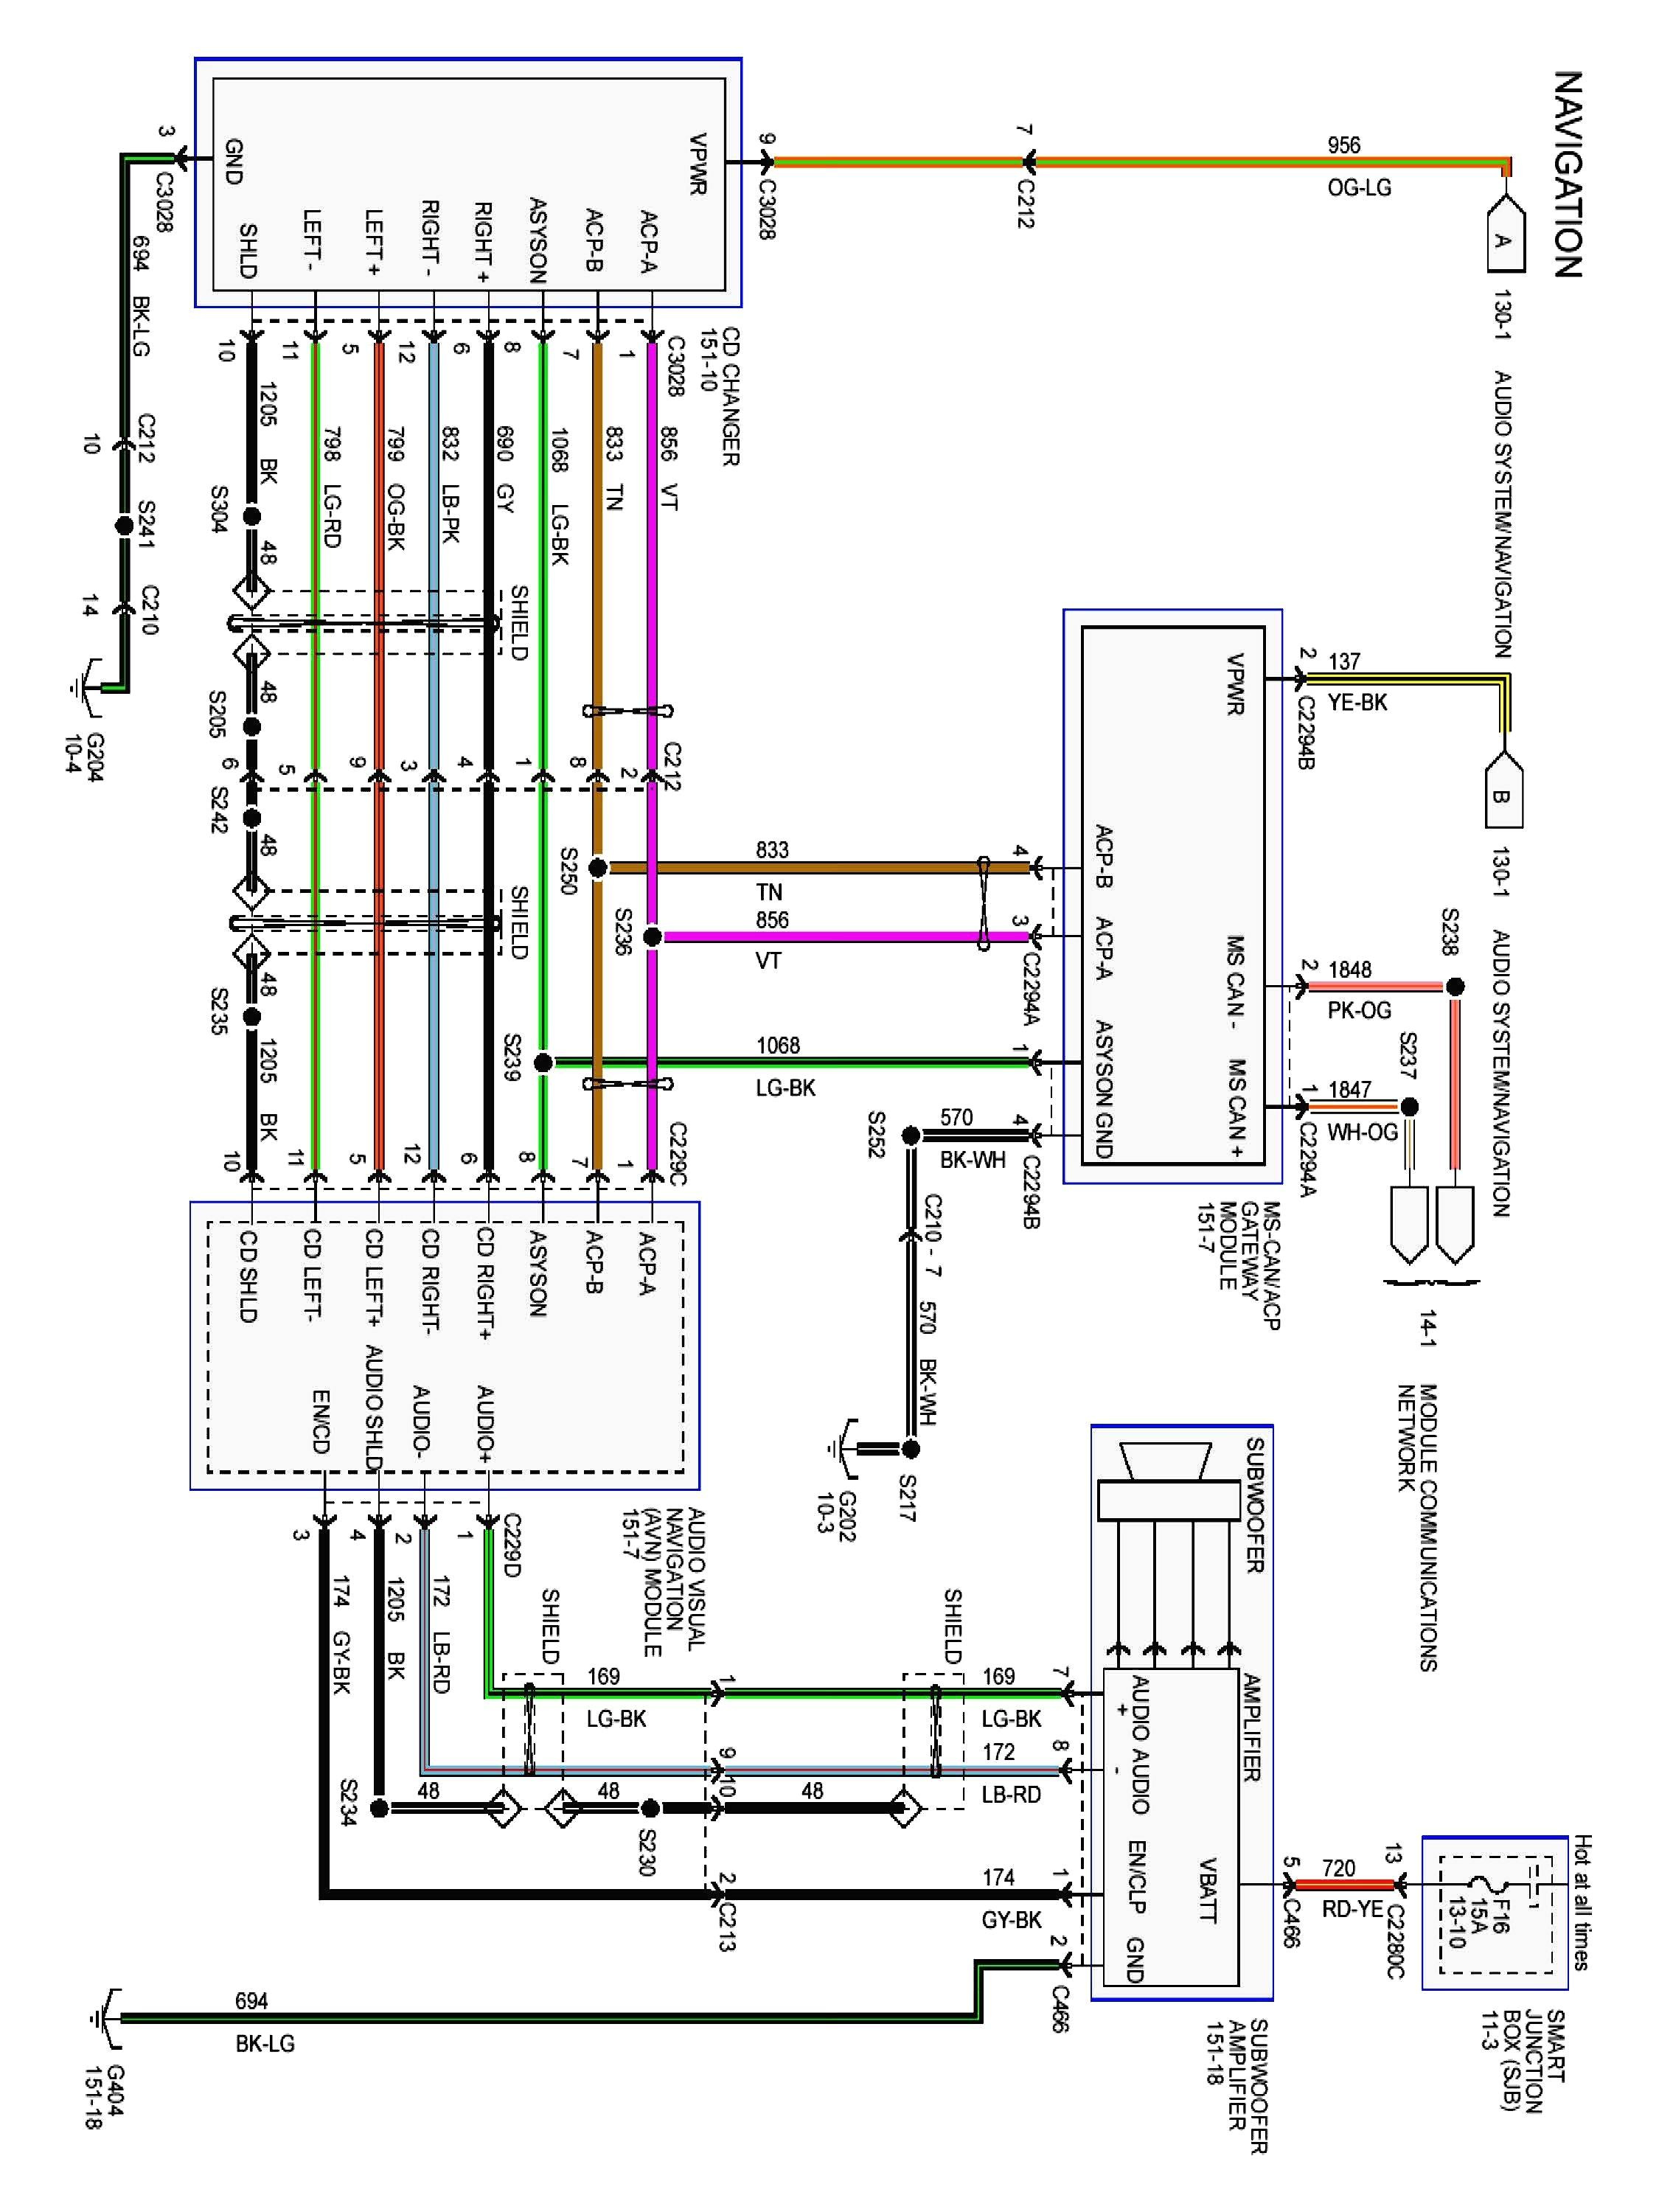 [FPER_4992]  CD_7186] 2001 Ford Escape Wiring Diagram Besides Ford Headlight Wiring  Harness Download Diagram | Ford Headlight Wiring Harness |  | Push Emba Mohammedshrine Librar Wiring 101